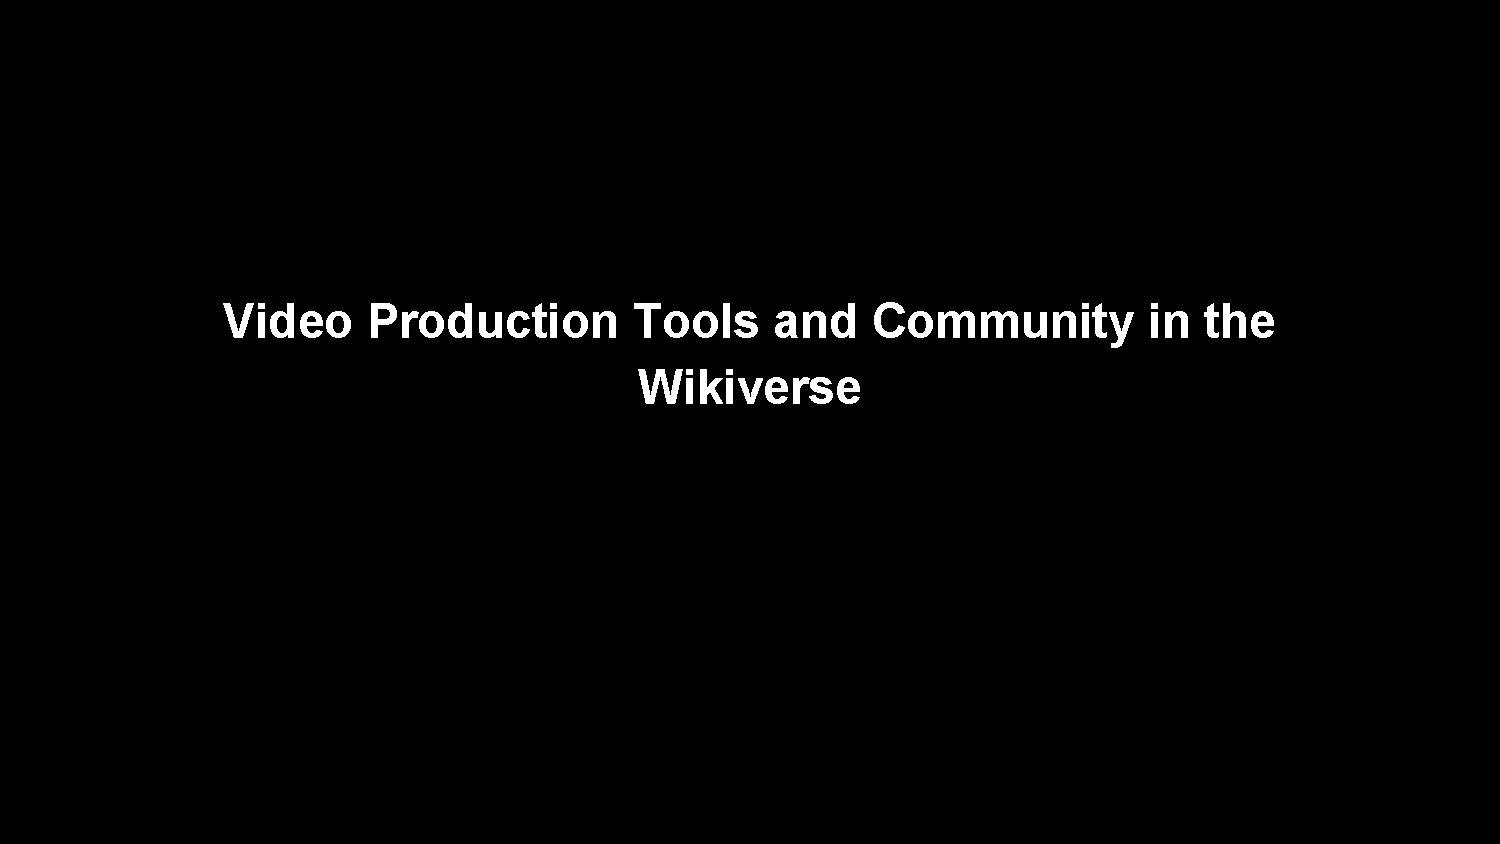 2015-07-18 Video Production Tools and Community in the Wikiverse.pdf